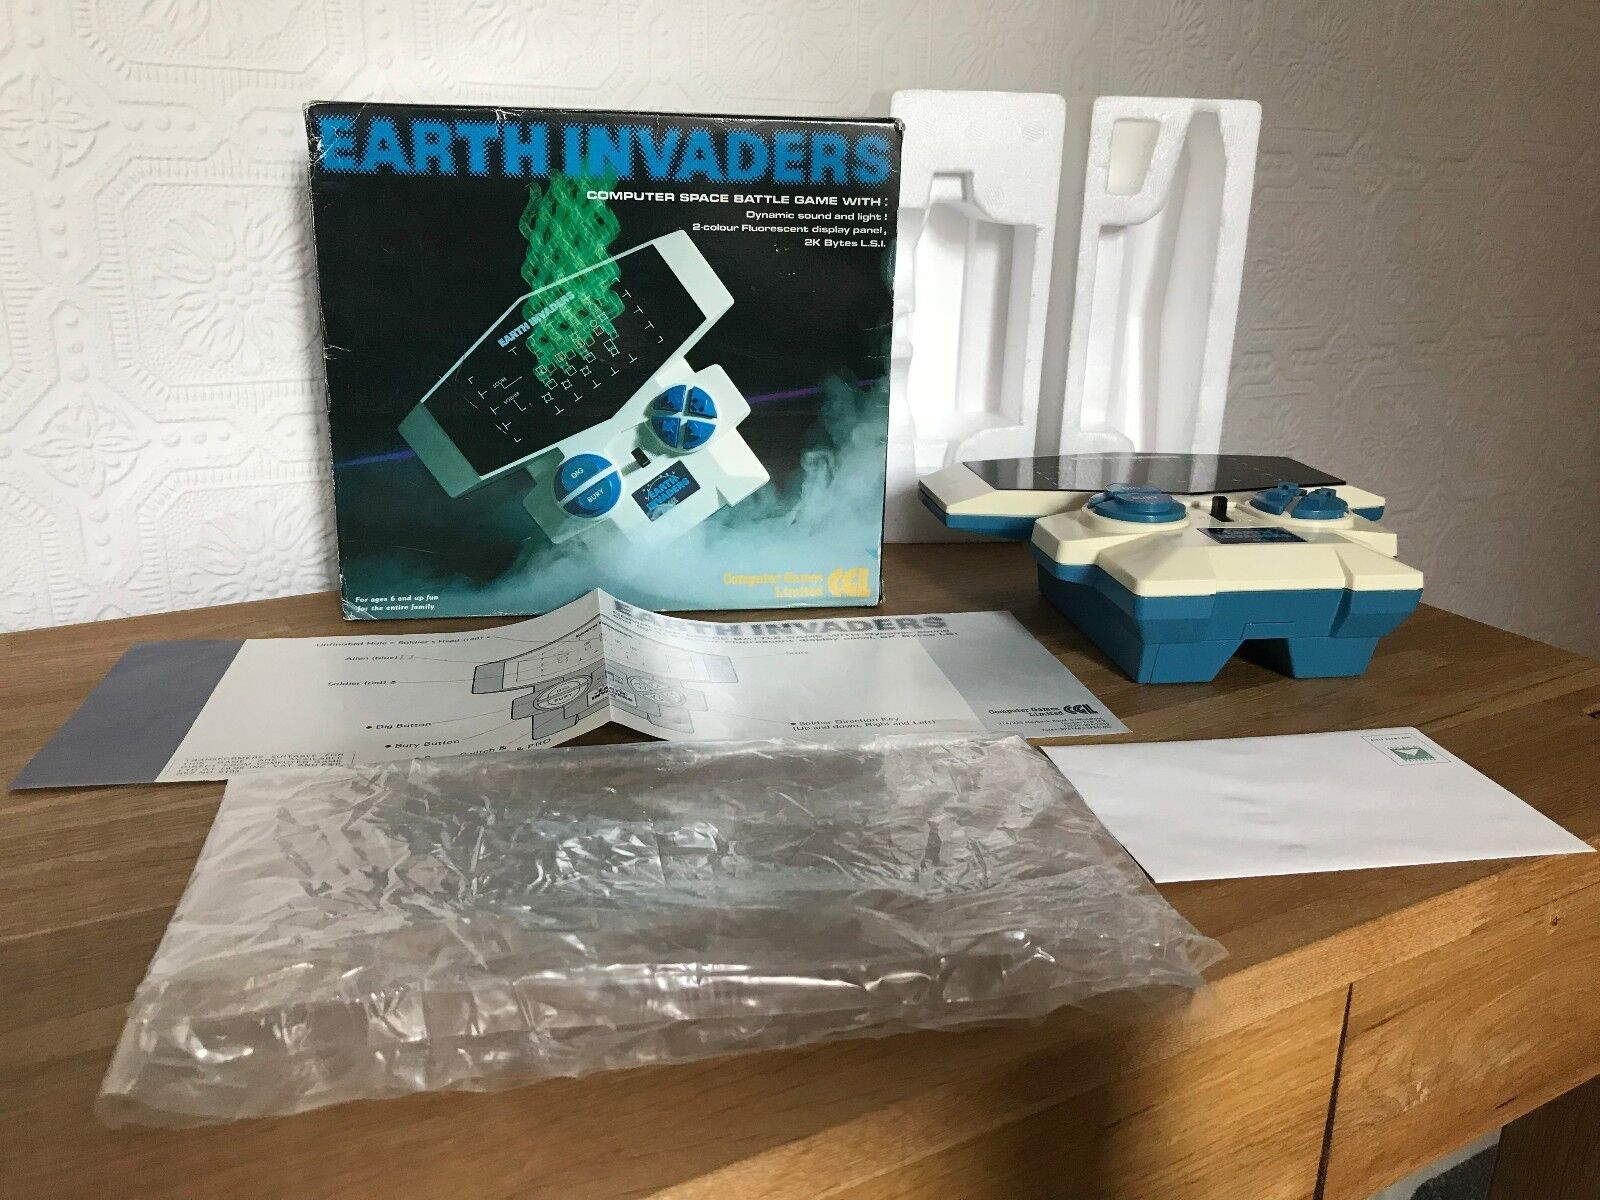 Boxed CGL Earth Invaders Vintage 1982 Handheld Handheld Handheld Electronic Game - Super Condition 86f854